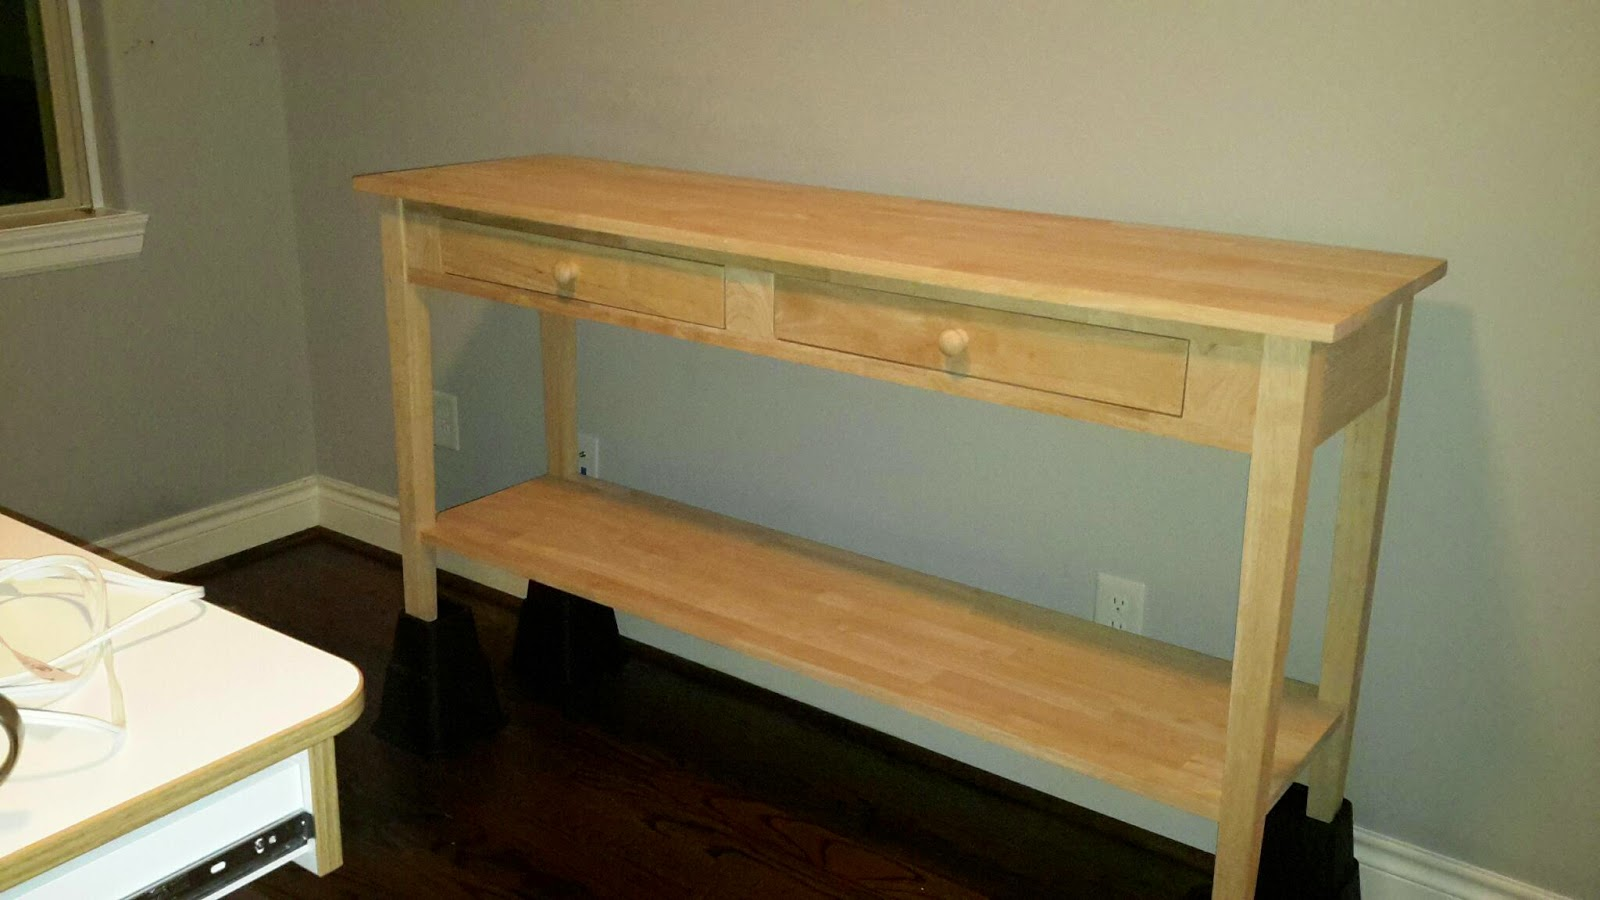 How to make a sofa table out of floor boards - I Ve Looked At The Big Board That Is Marketed To Quilters And Sits On Top Of Your Regular Iron Table It S About 150 That Option Seemed Bulky And Somehow